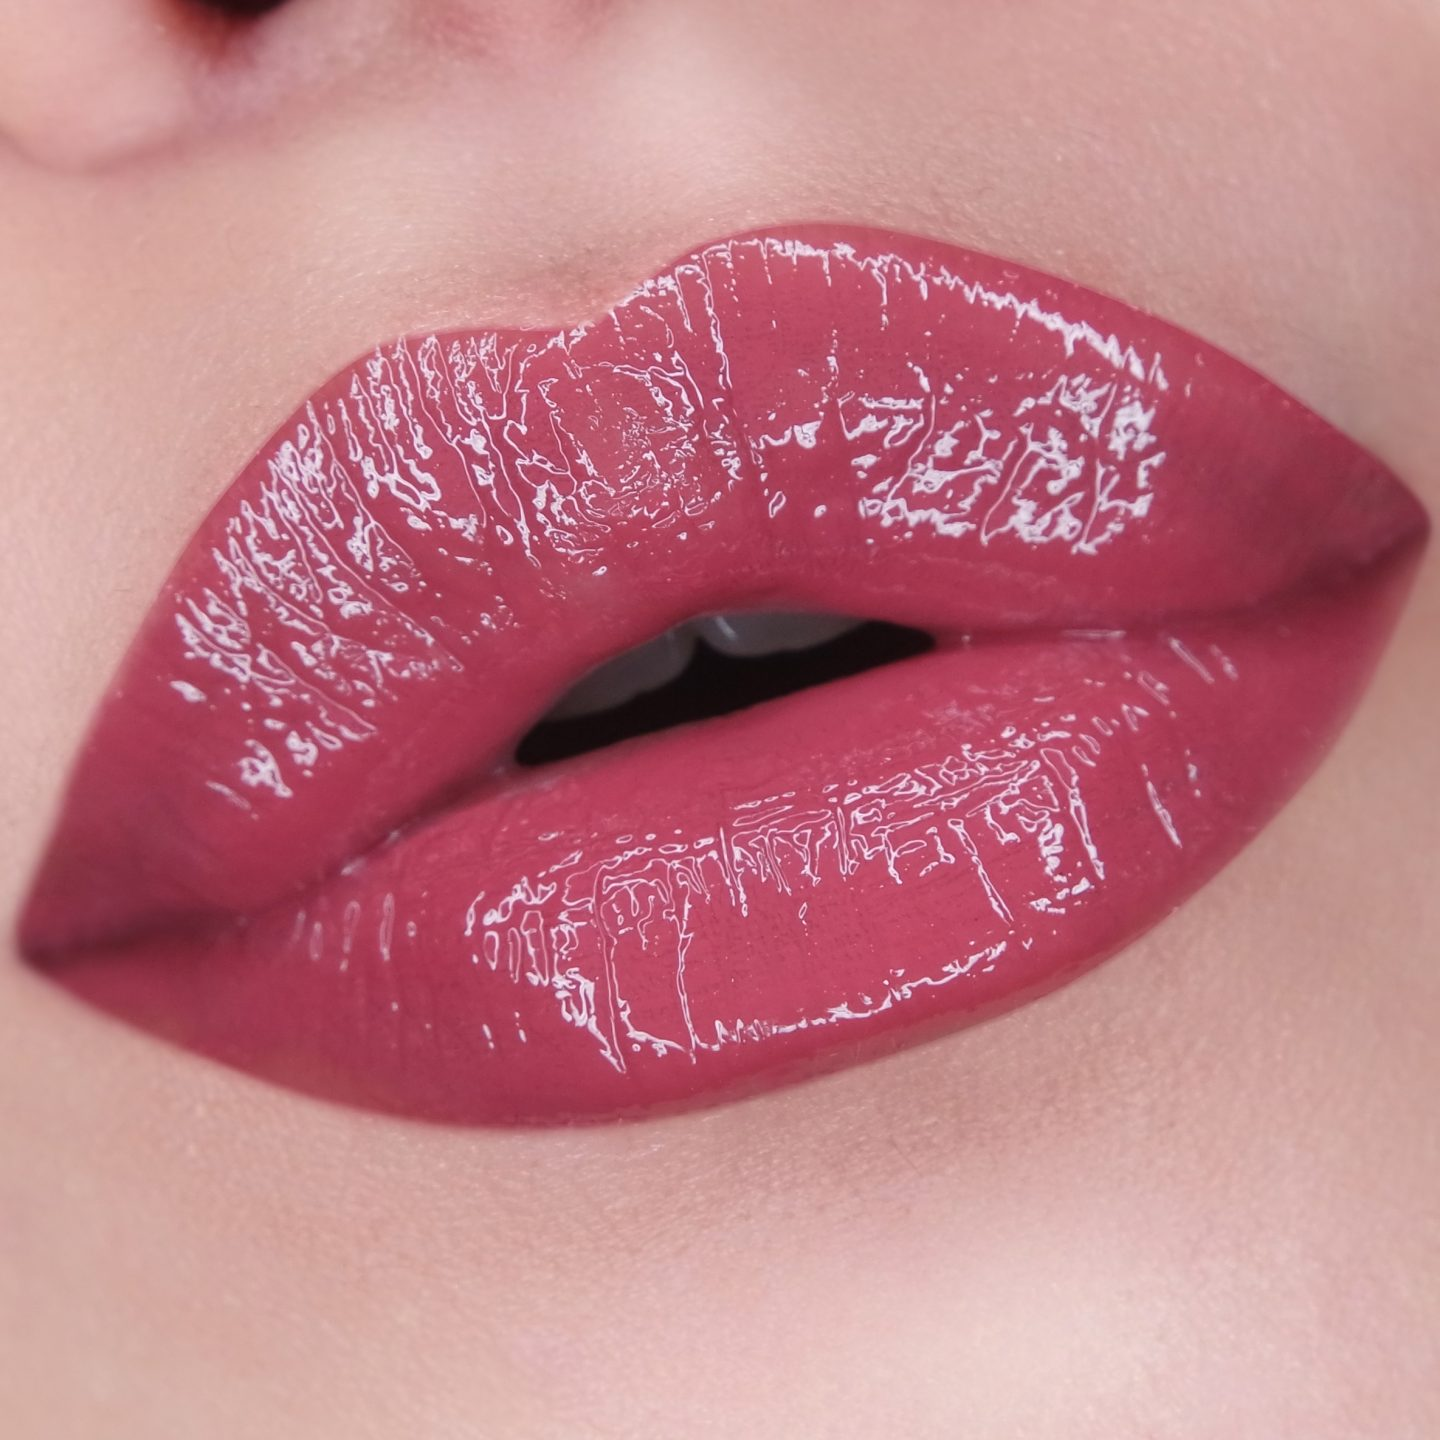 NARS Lip Gloss in Fever Beat Swatch